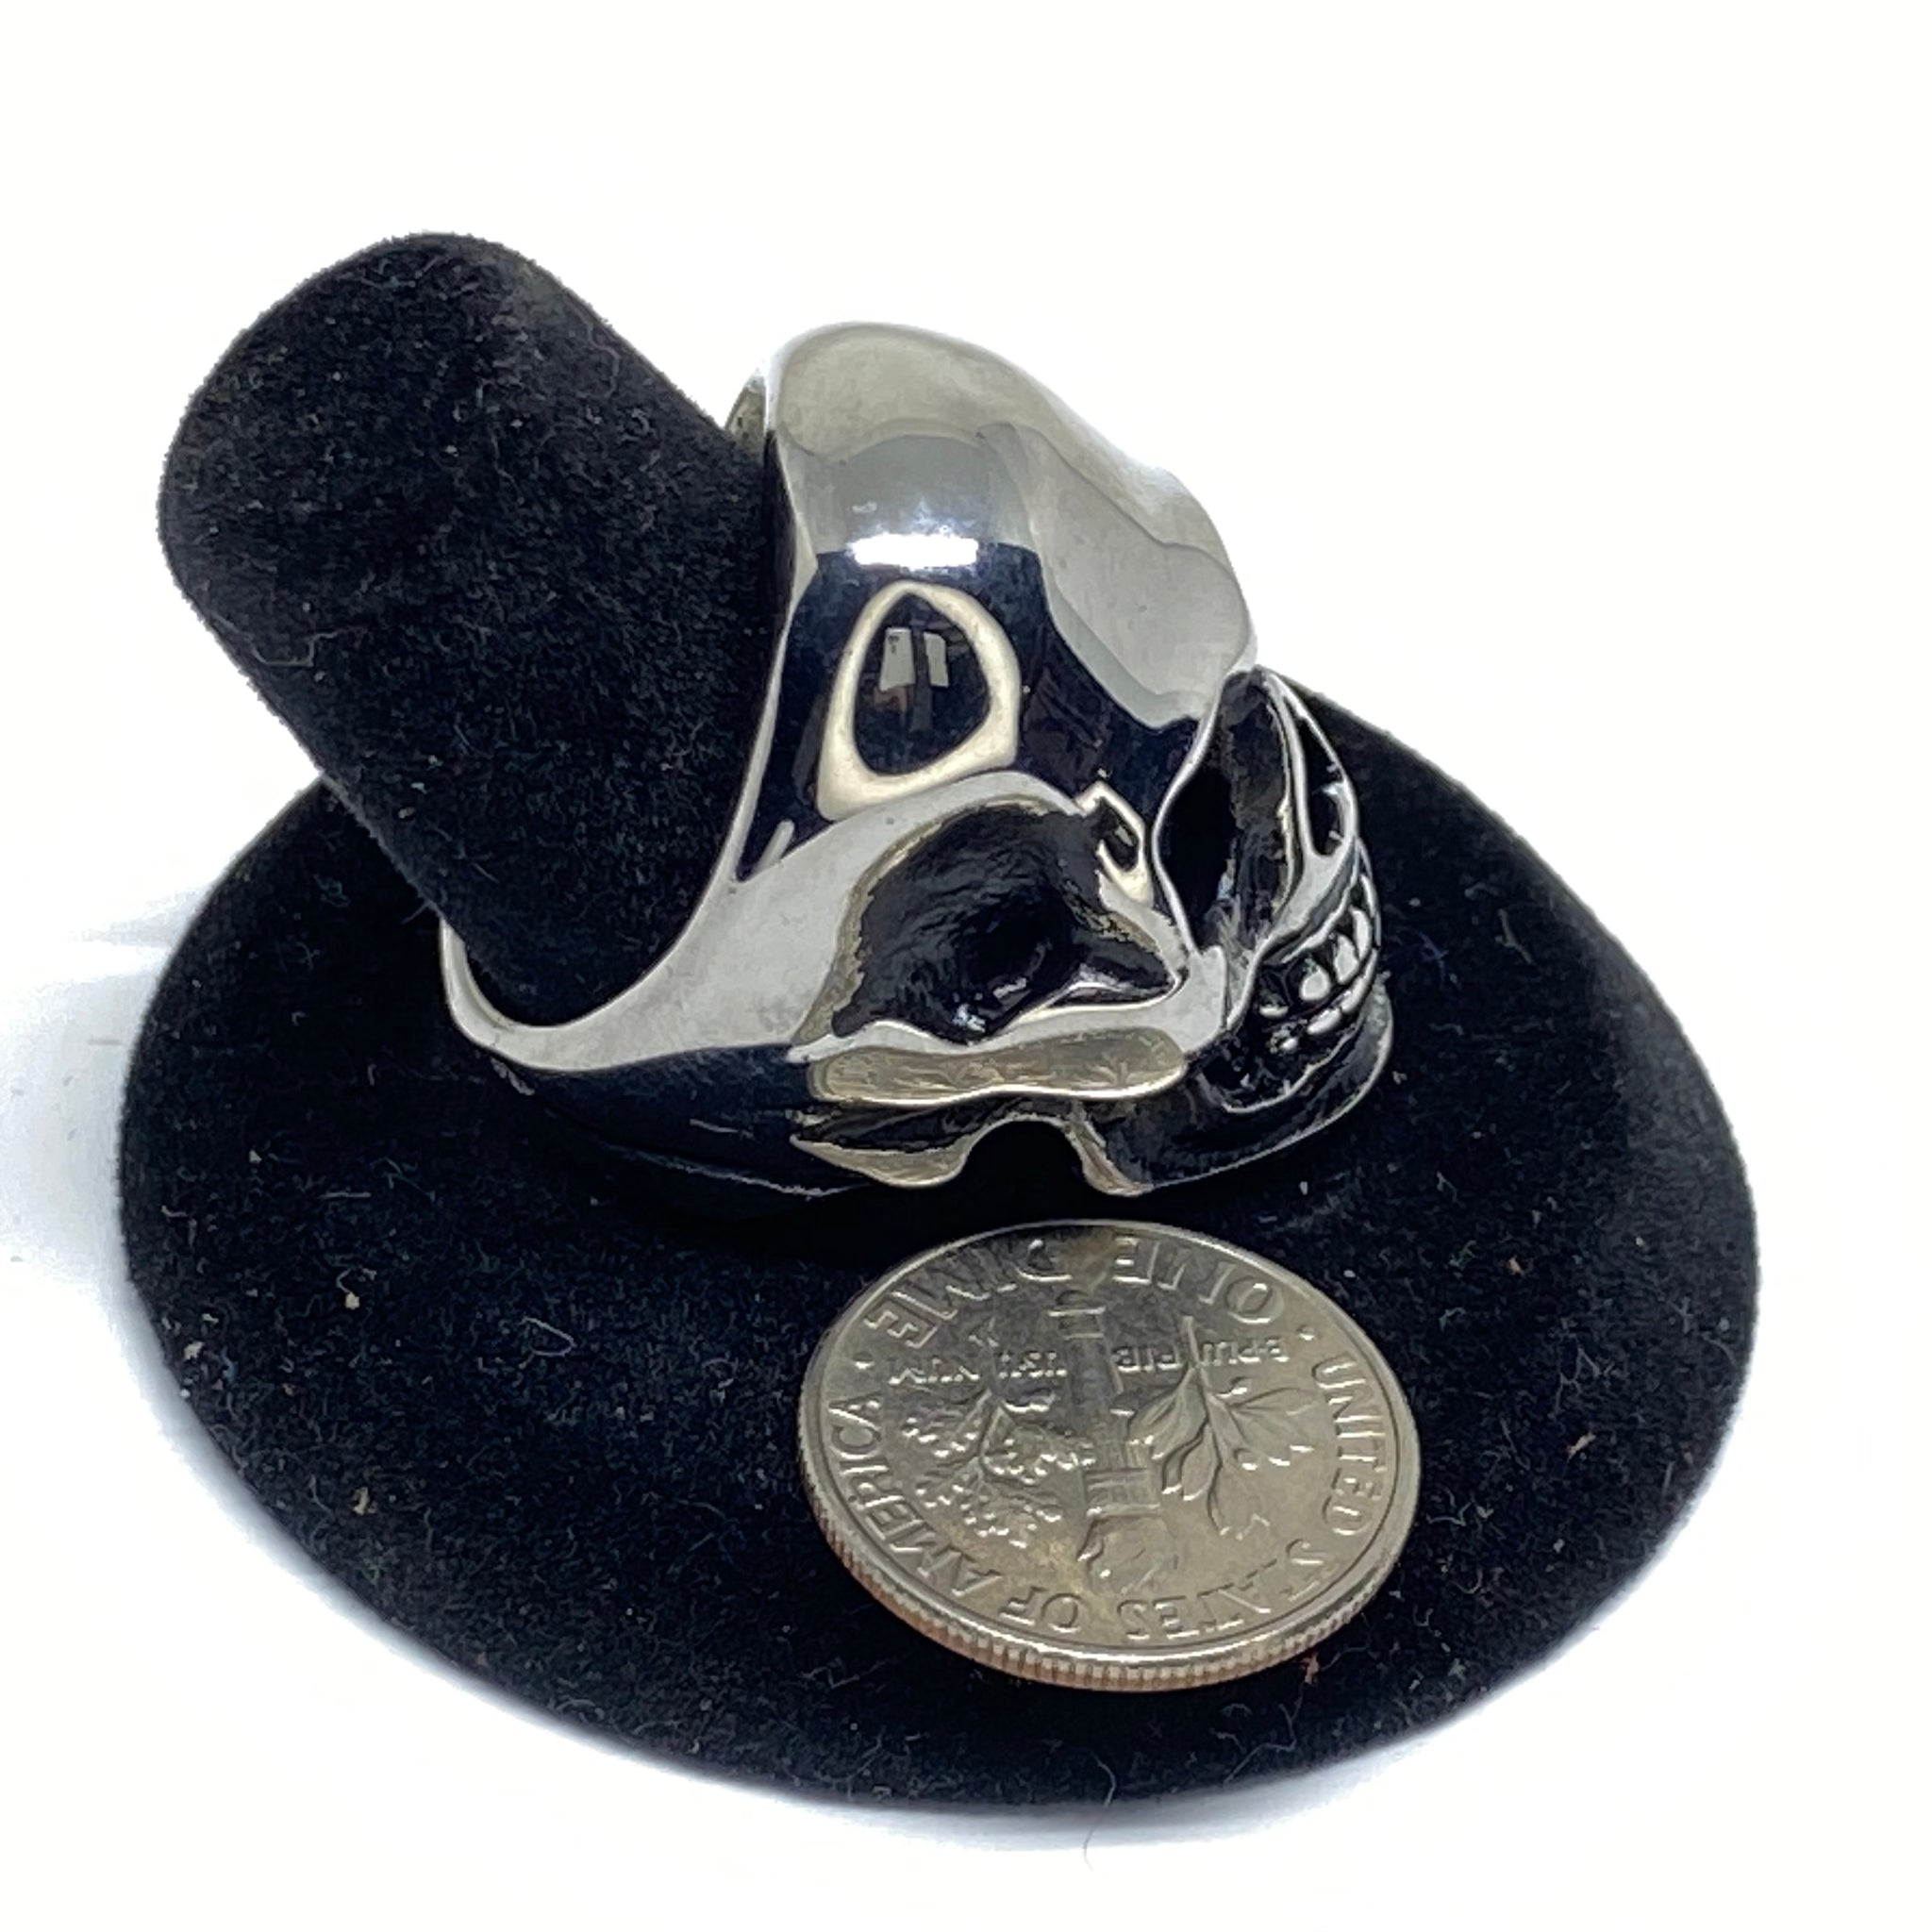 SMALL SKULL STAINLESS STEEL RING.